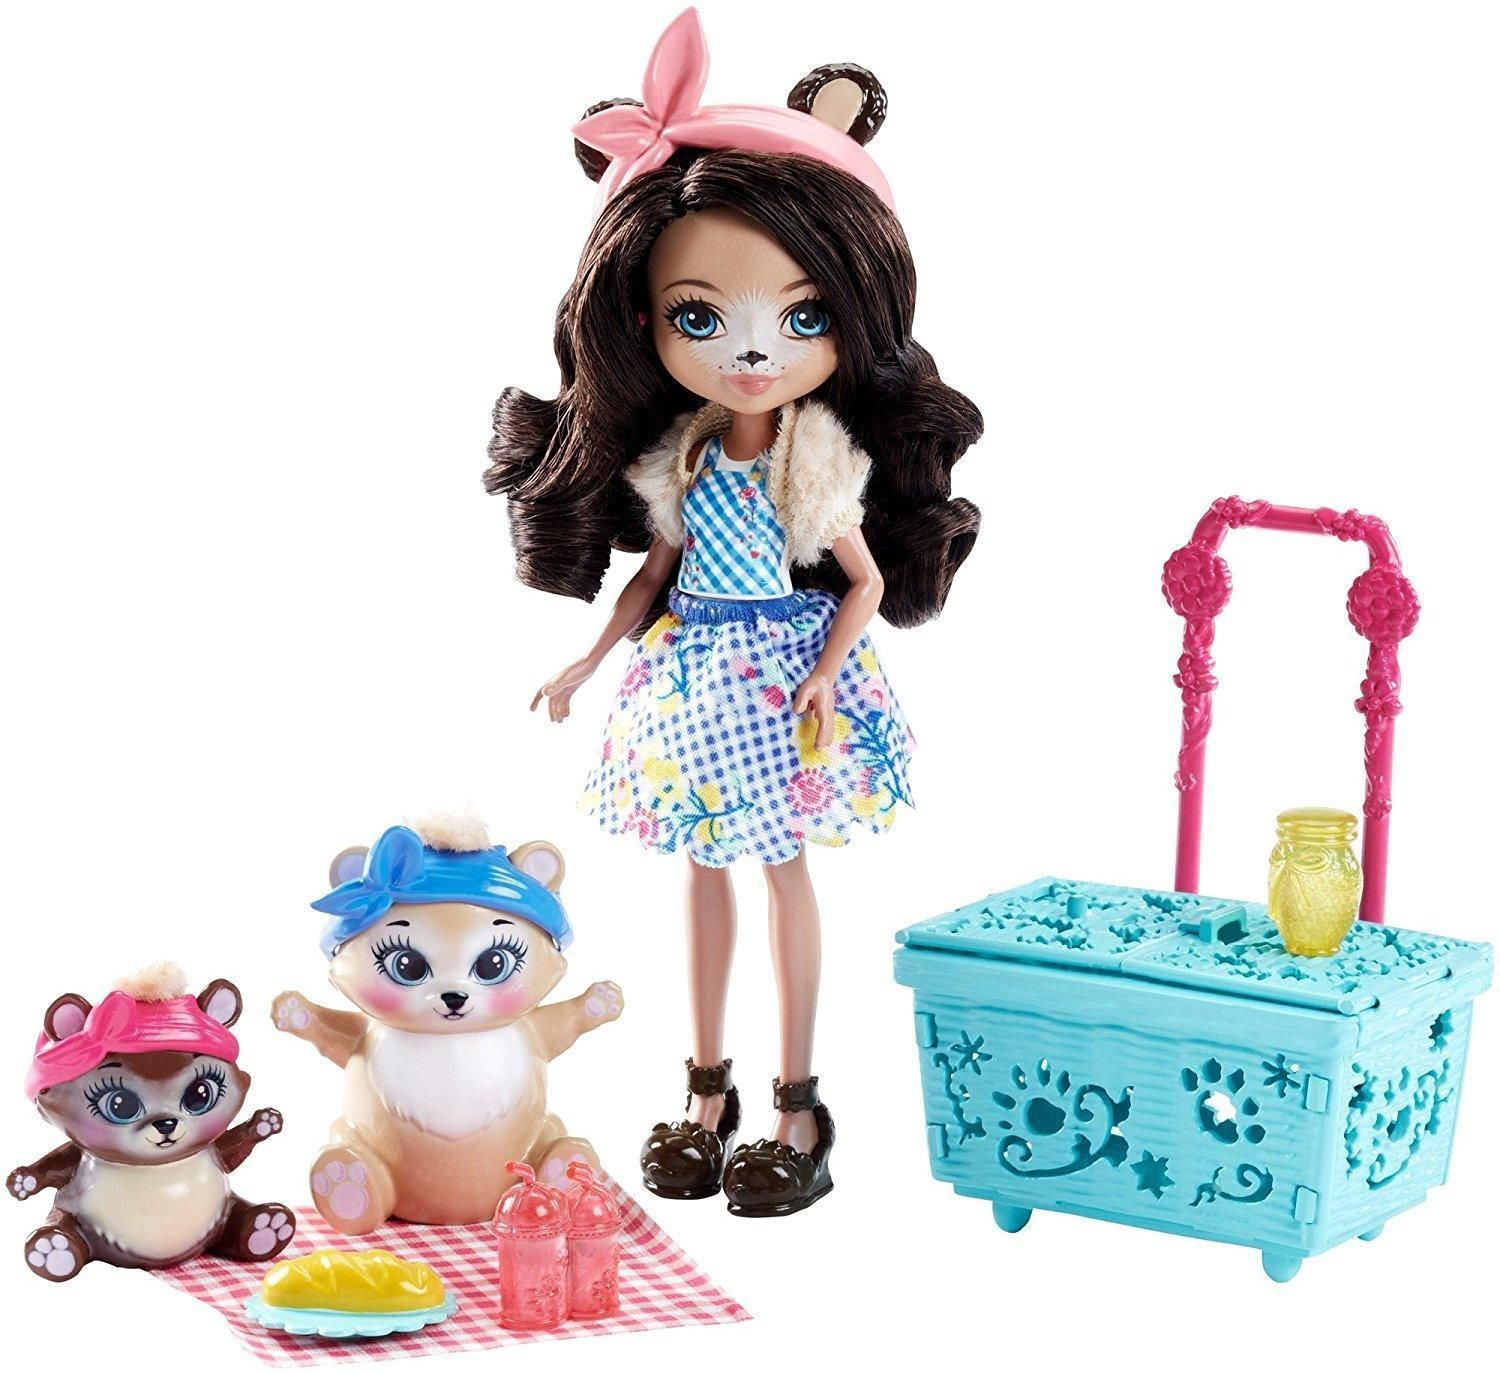 Enchantimals Paws For A Picnic Playset With Bren Bear Doll